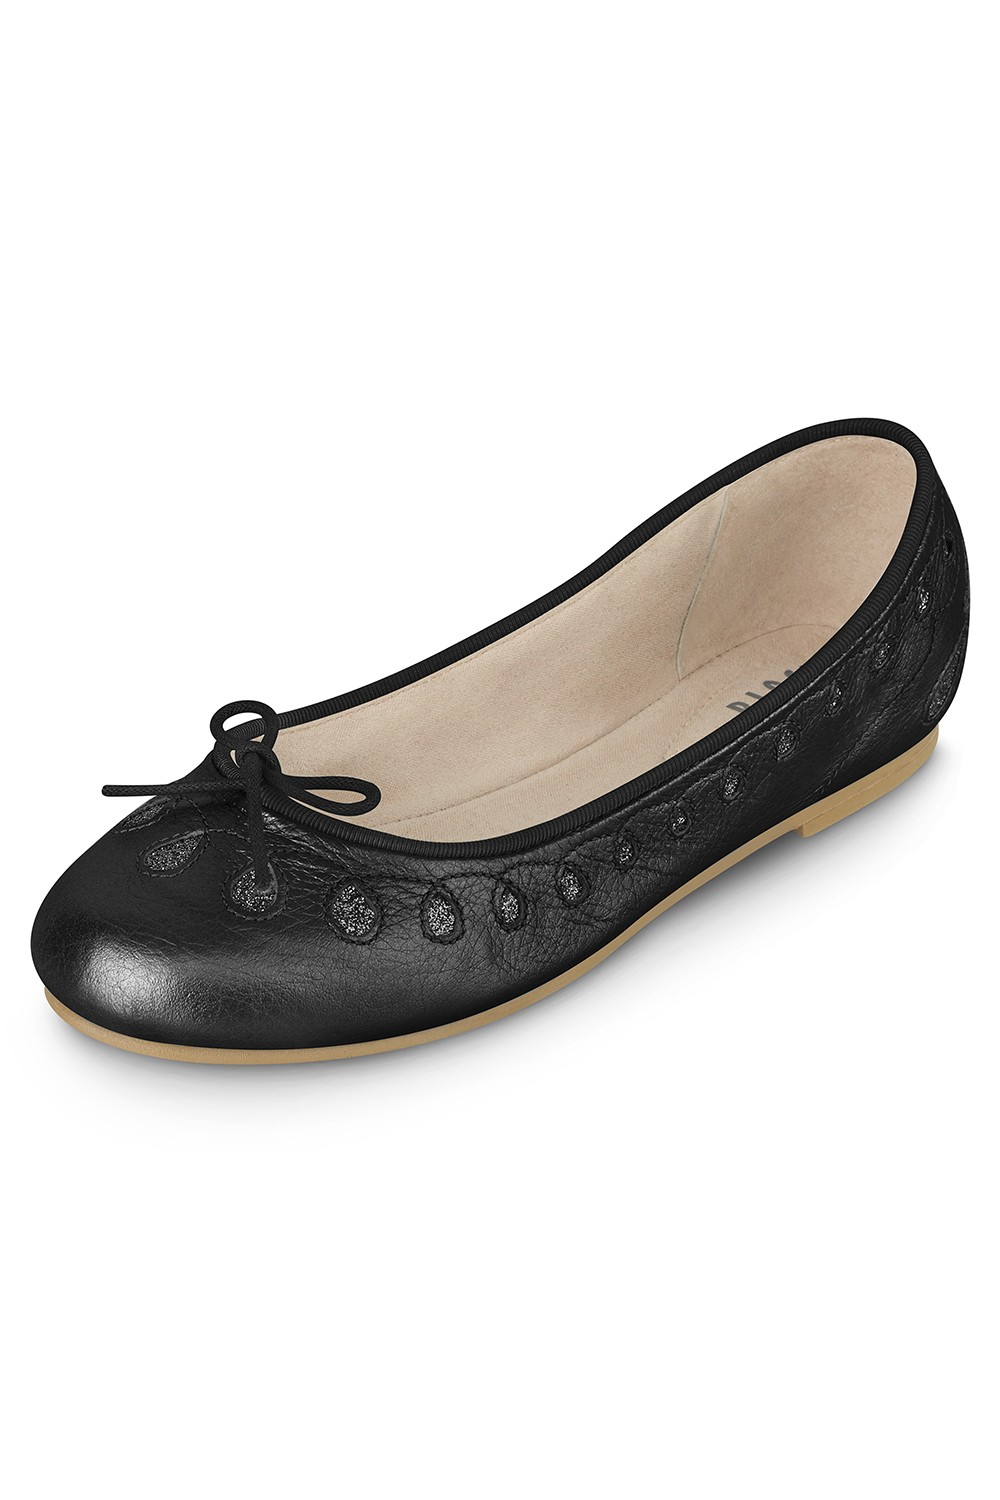 Caroline Girls Fashion Shoes